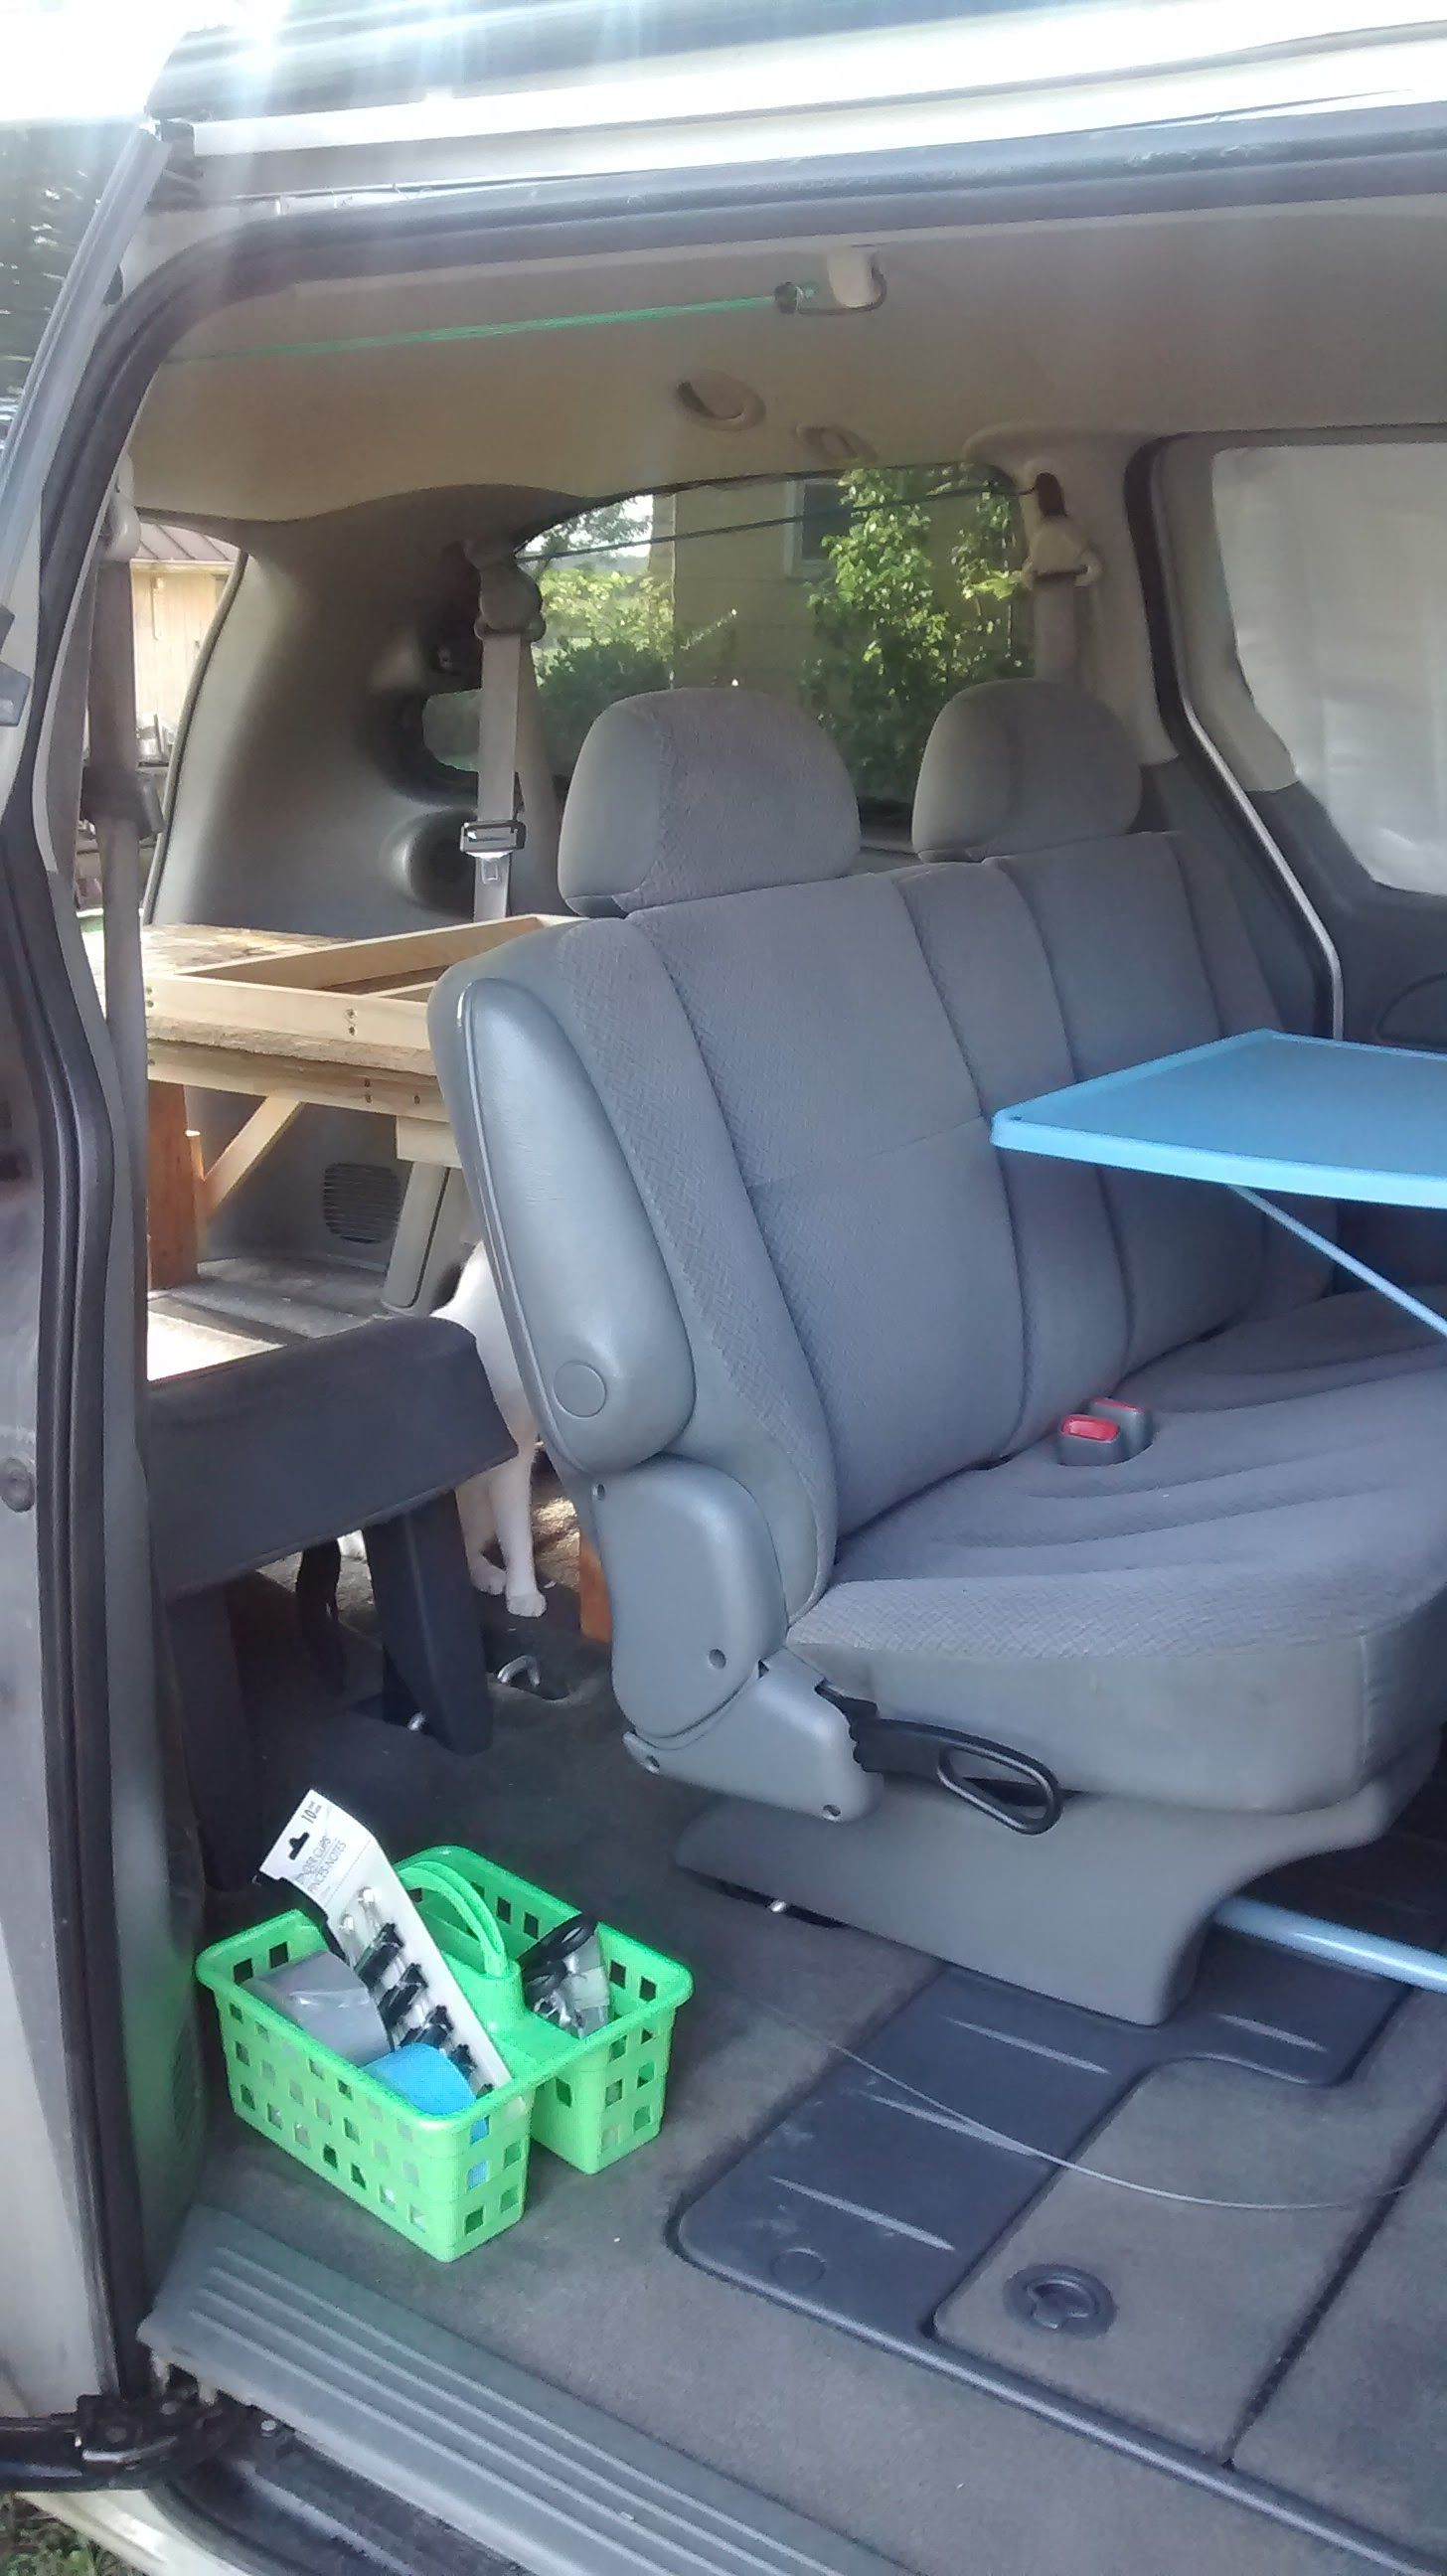 My 2006 Dodge Caravan With Bed Frame Folded Up And Both Seats Up